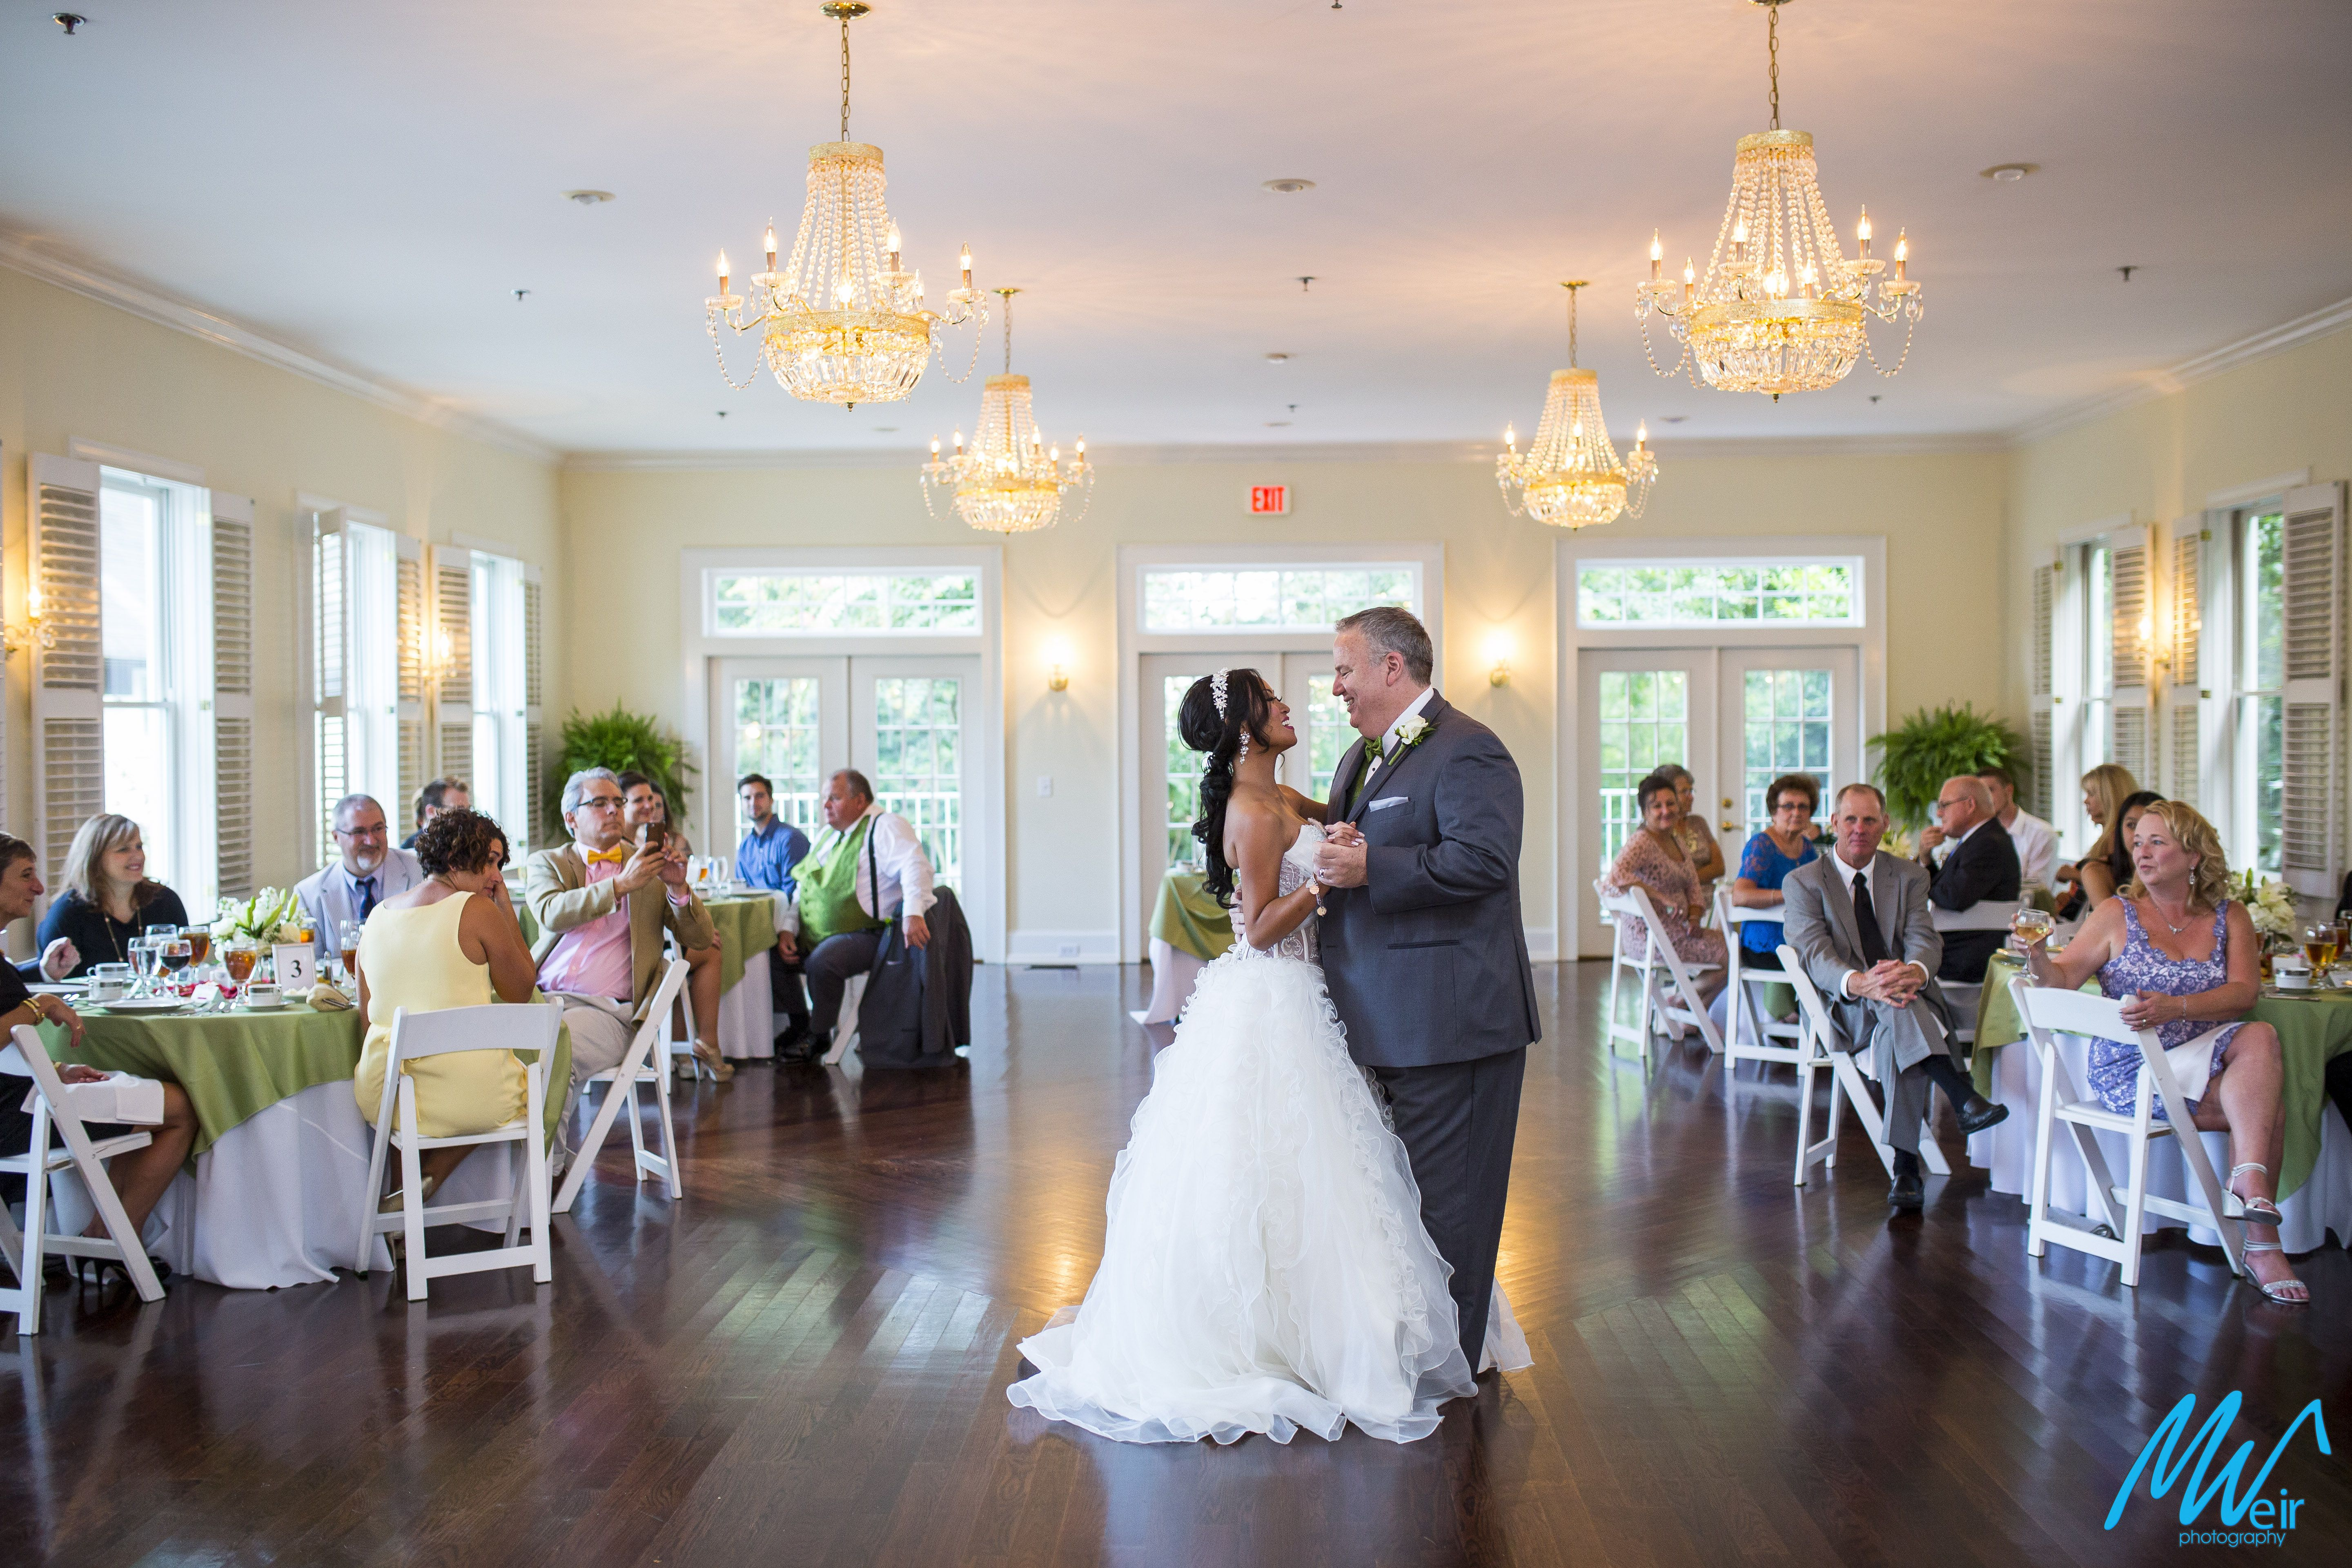 First Dance At A Small Intimate Wedding In The Whitlock Inn Marietta Ga